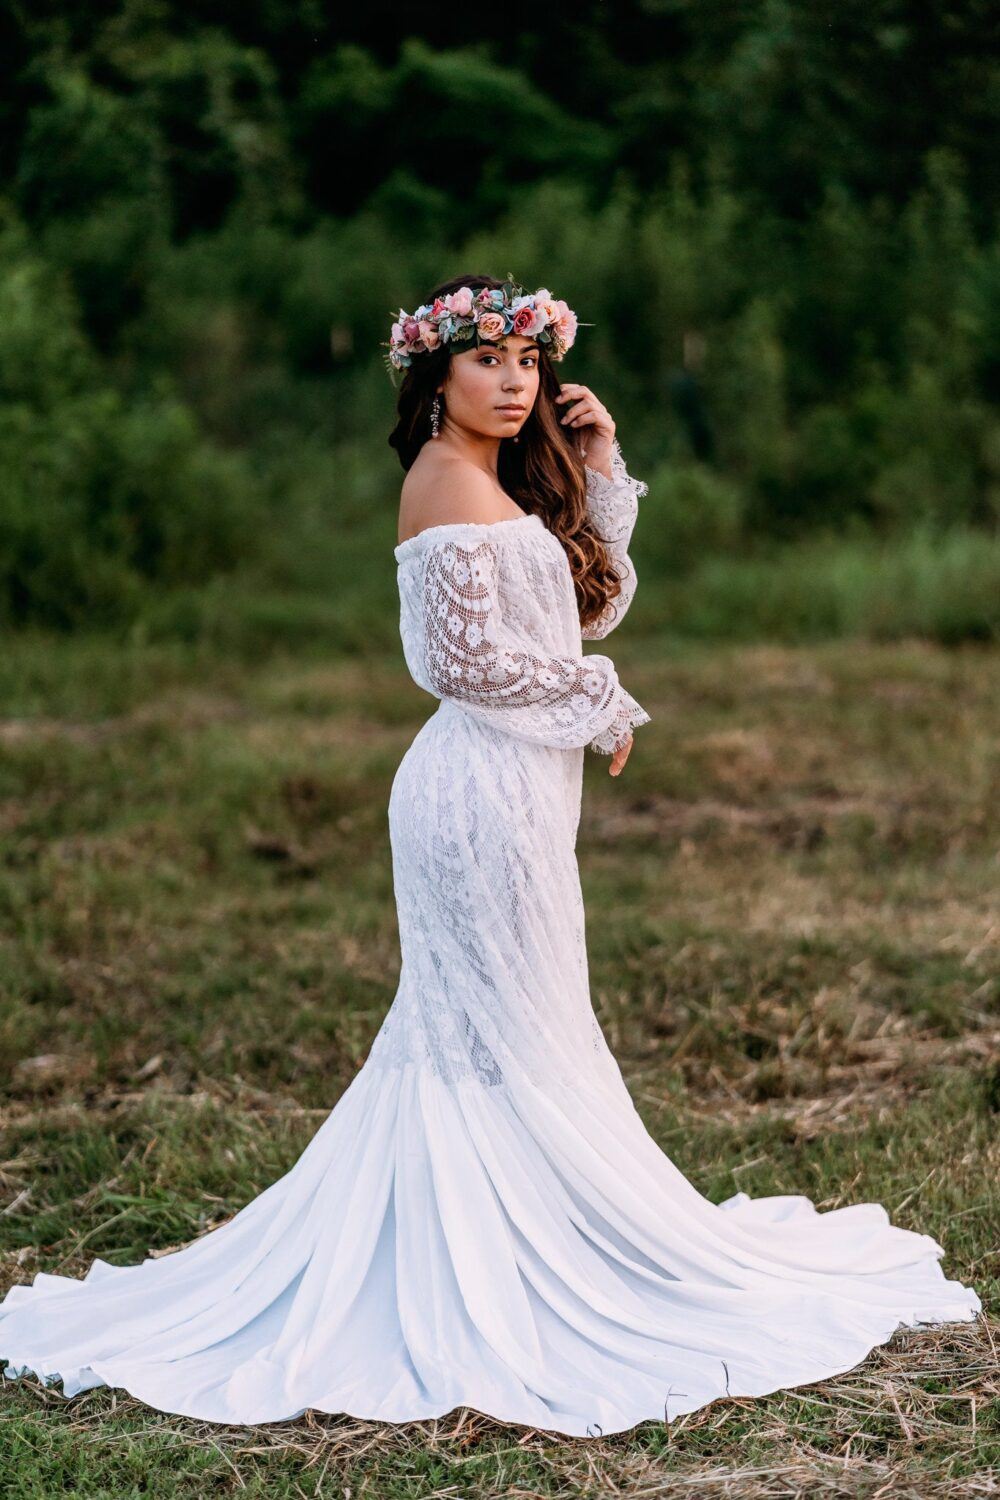 Dreamy Lace Wedding Dress | Plus Size Bridal Gowns| Off The Shoulder Romantic Ready To Ship L Xl 1X 2X 3X Angelica